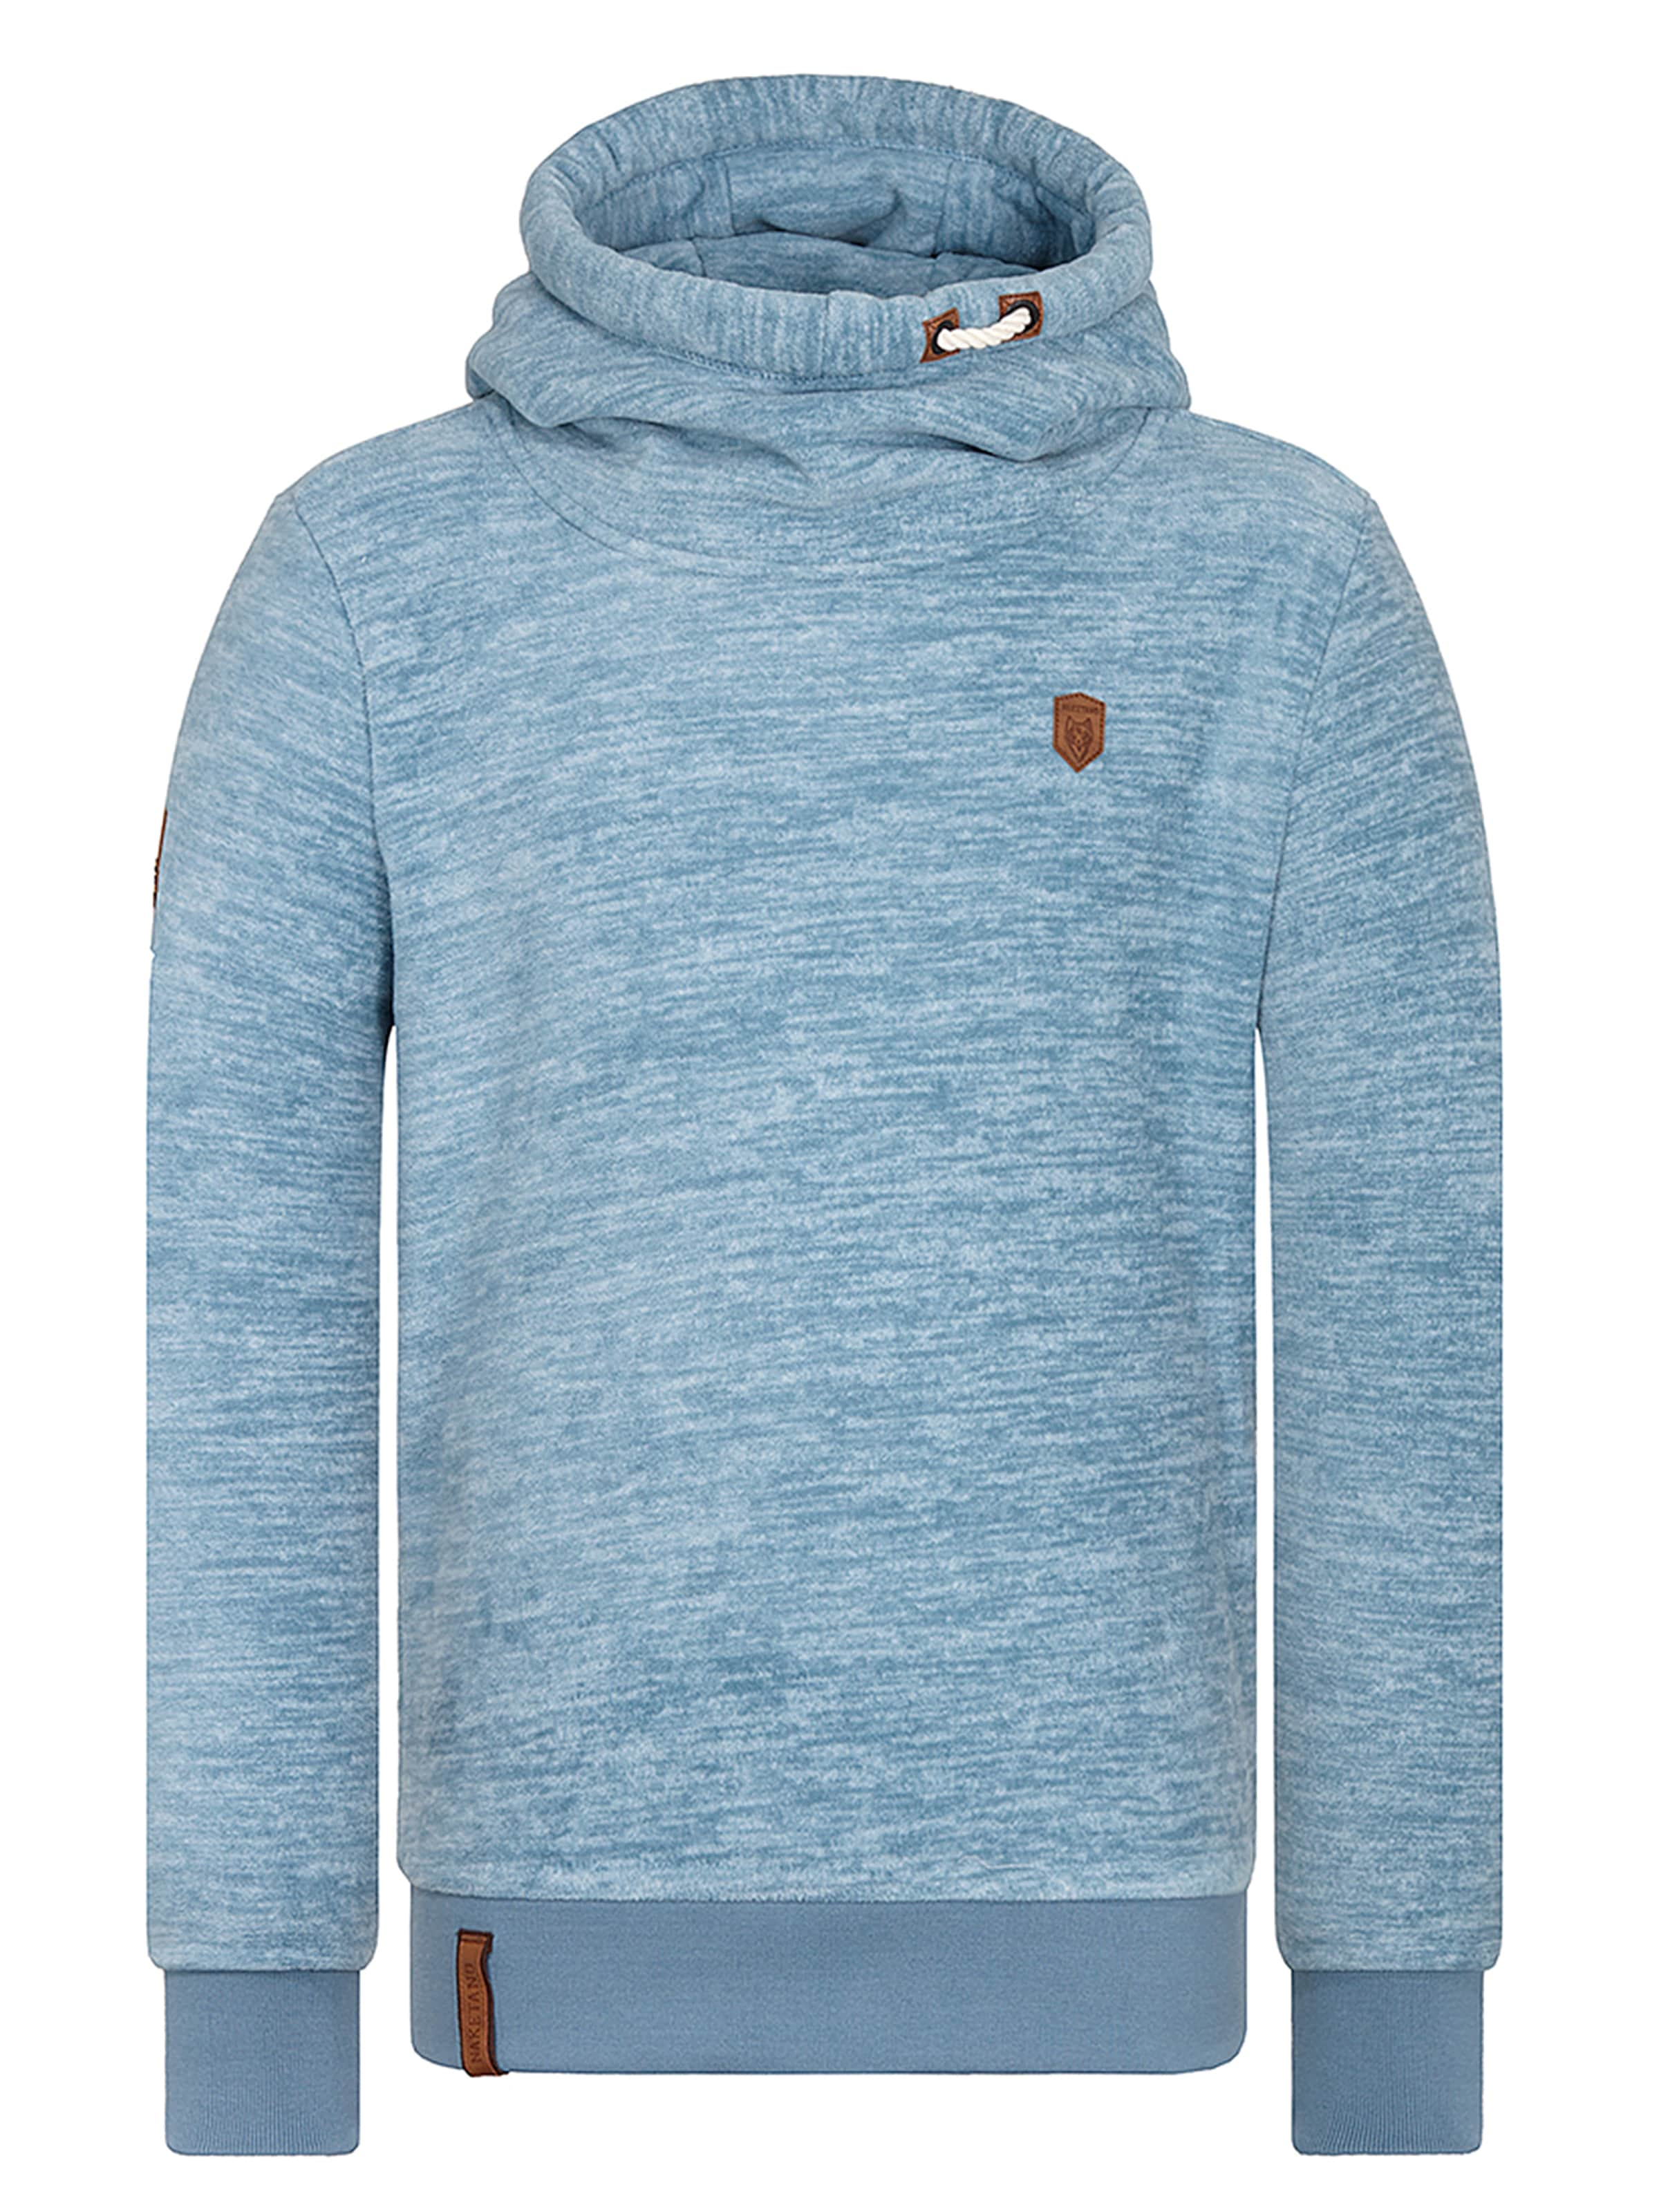 En Clair Bleu 'flash Ahaaaaaaaaa' Naketano Sweat shirt CxBoeWrd